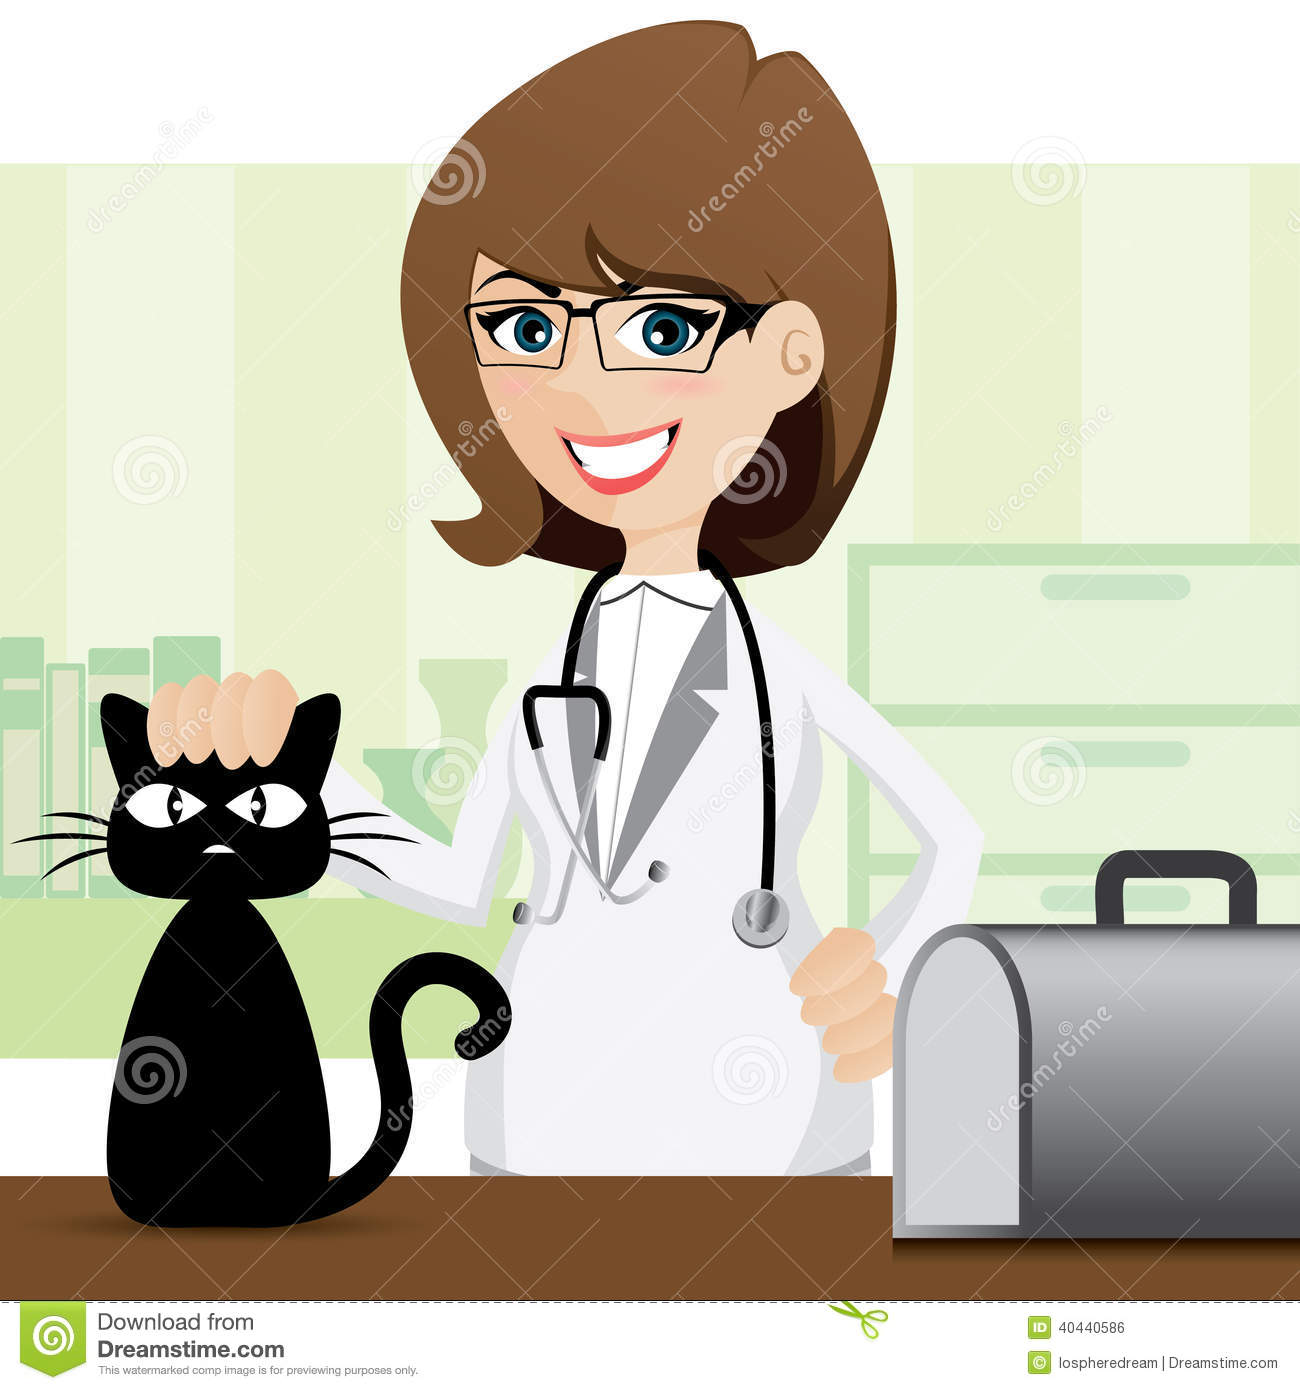 how to become a animal doctor